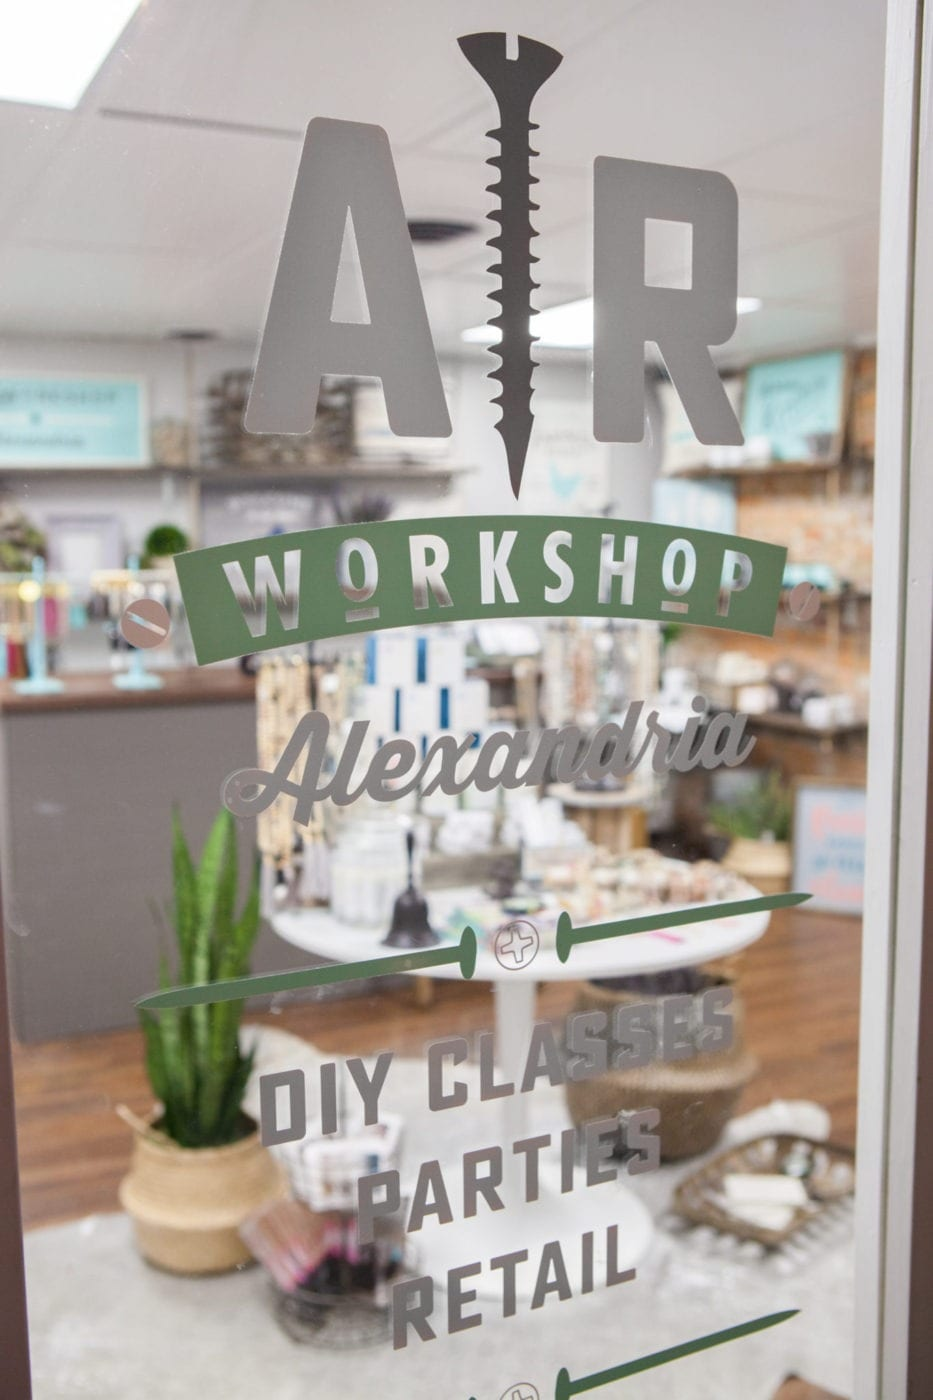 AR Workshop Alexandria Is A Boutique DIY Workshop Offering Hands On Classes  For Creating Custom Home Decor In A Cozy Lounge Style Atmosphere.